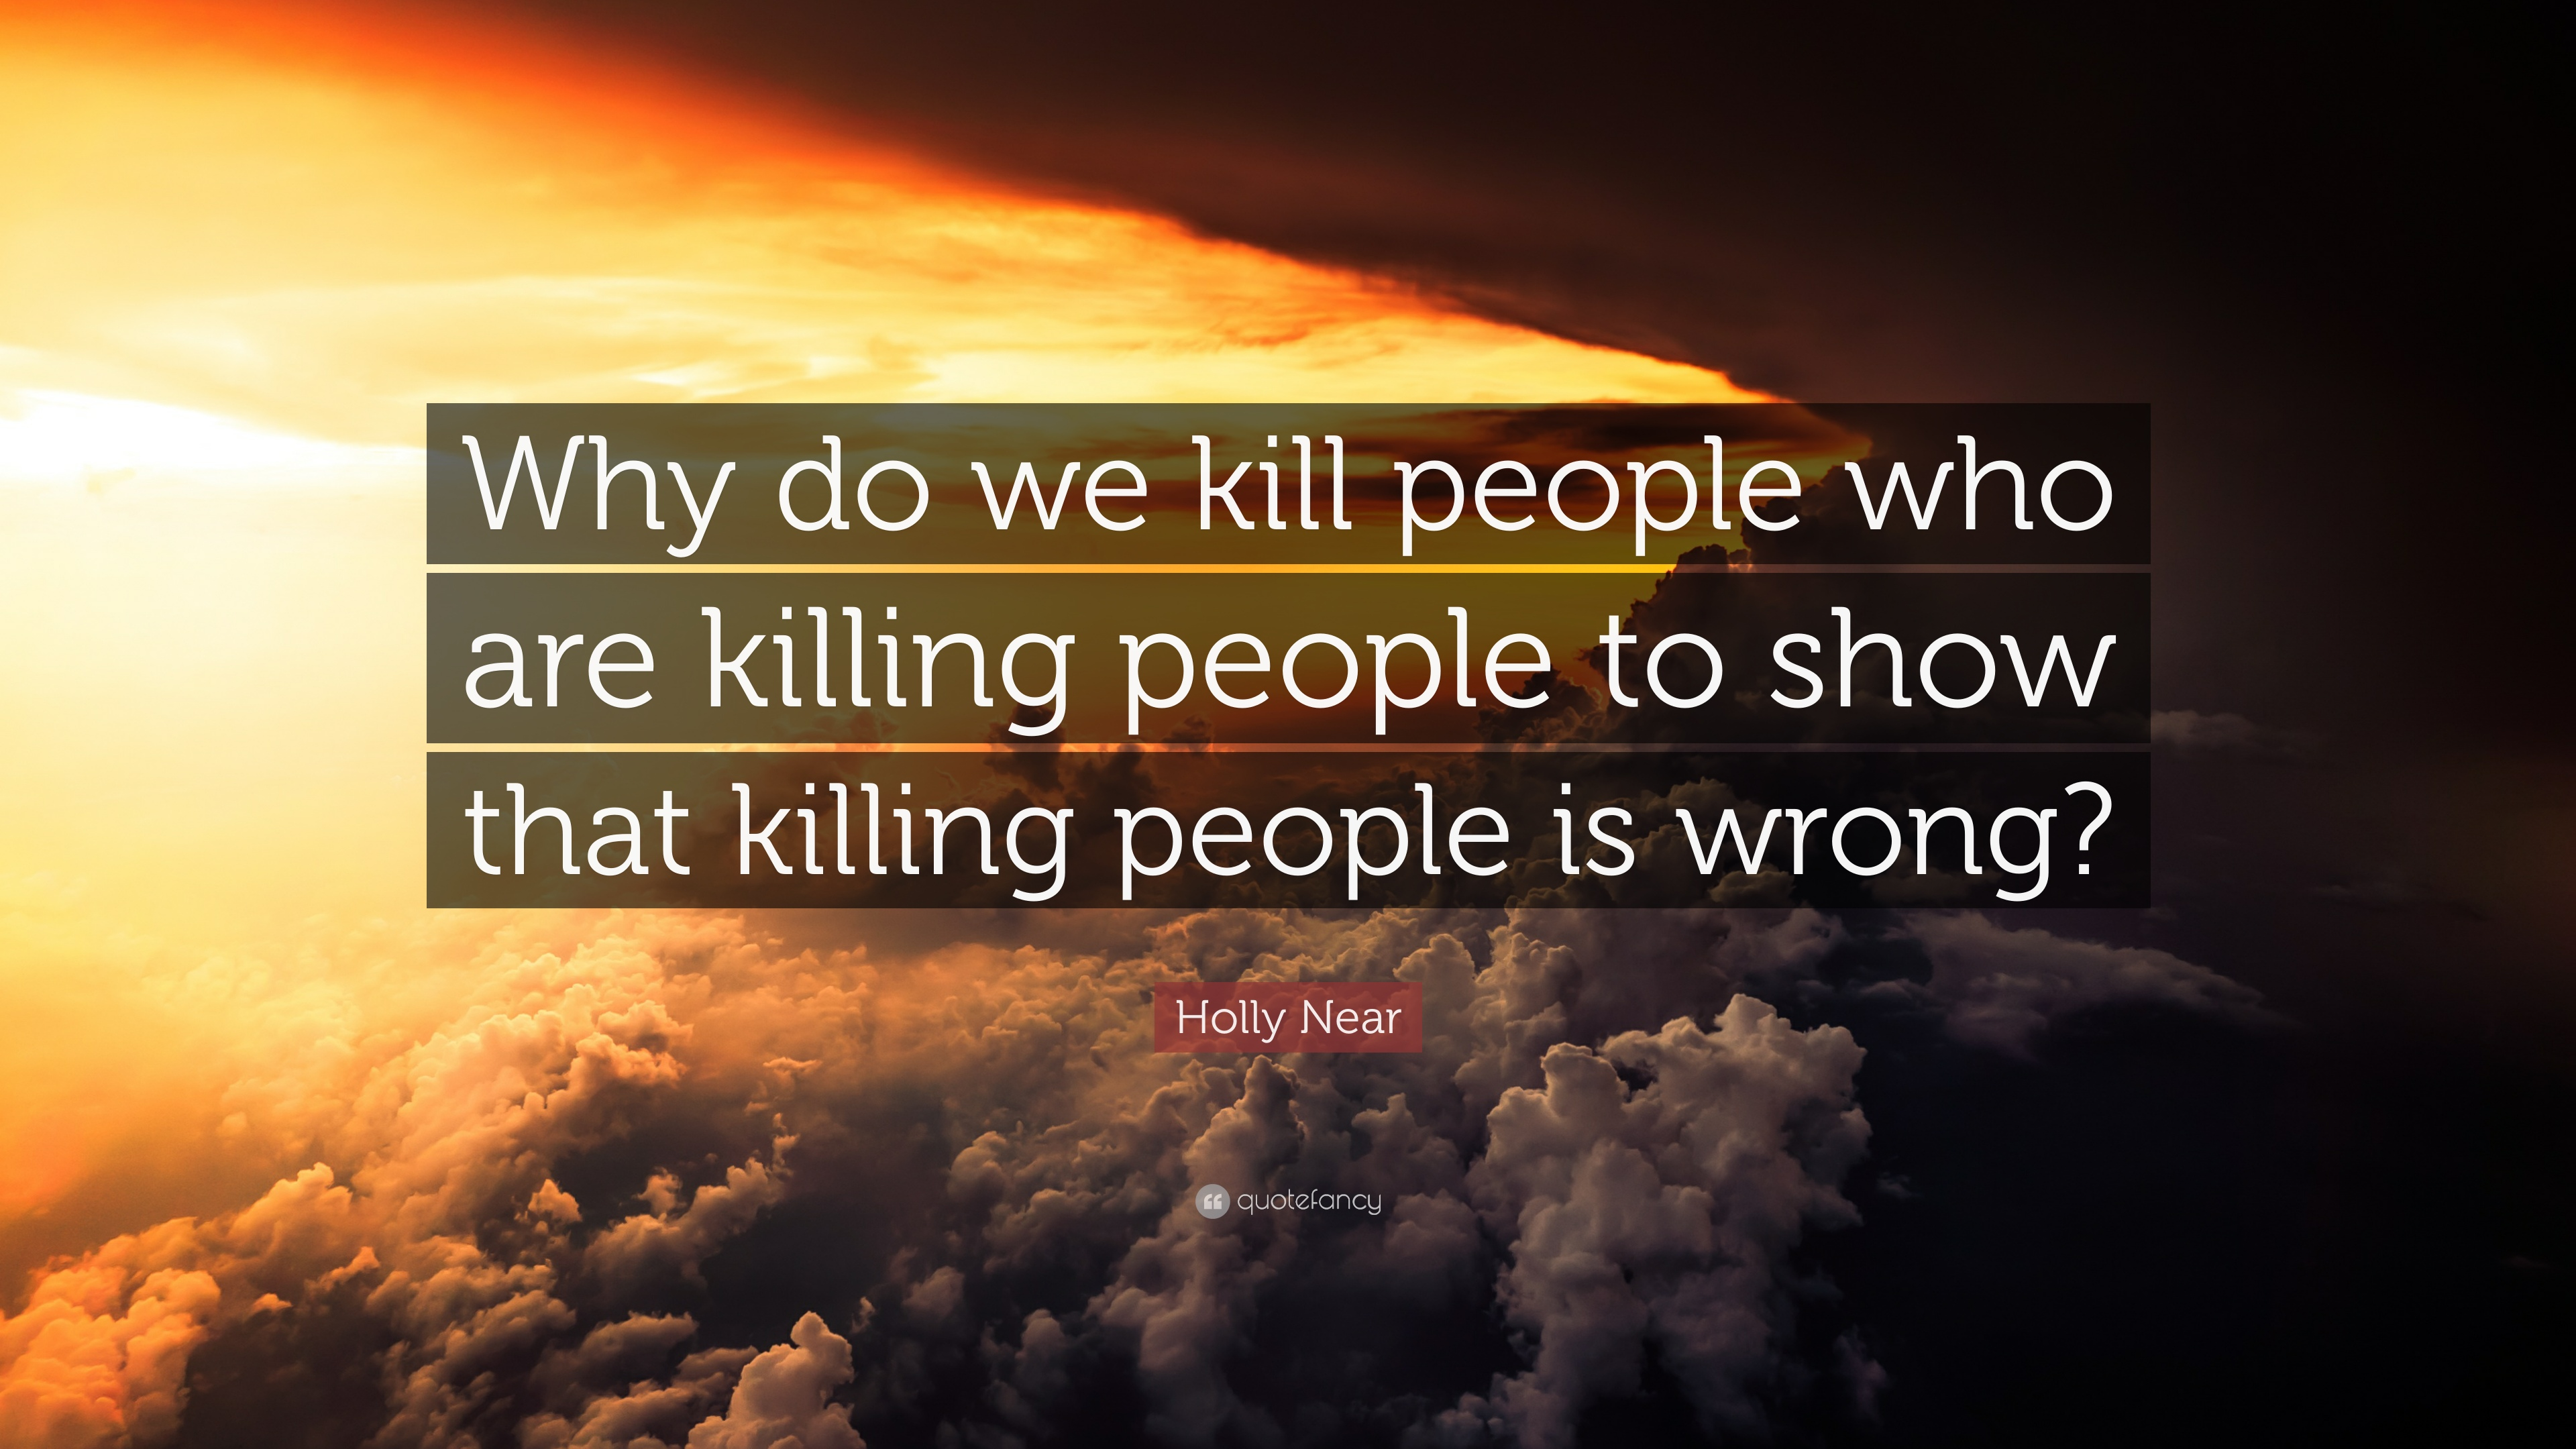 an analysis of why do we kill people who kill people to show that killing people is wrong We don't do it to show that killing people is wrong, we do it to ensure that they can never kill someone again you don't have to agree with it, but let's at least get the reasons right =p permalink.